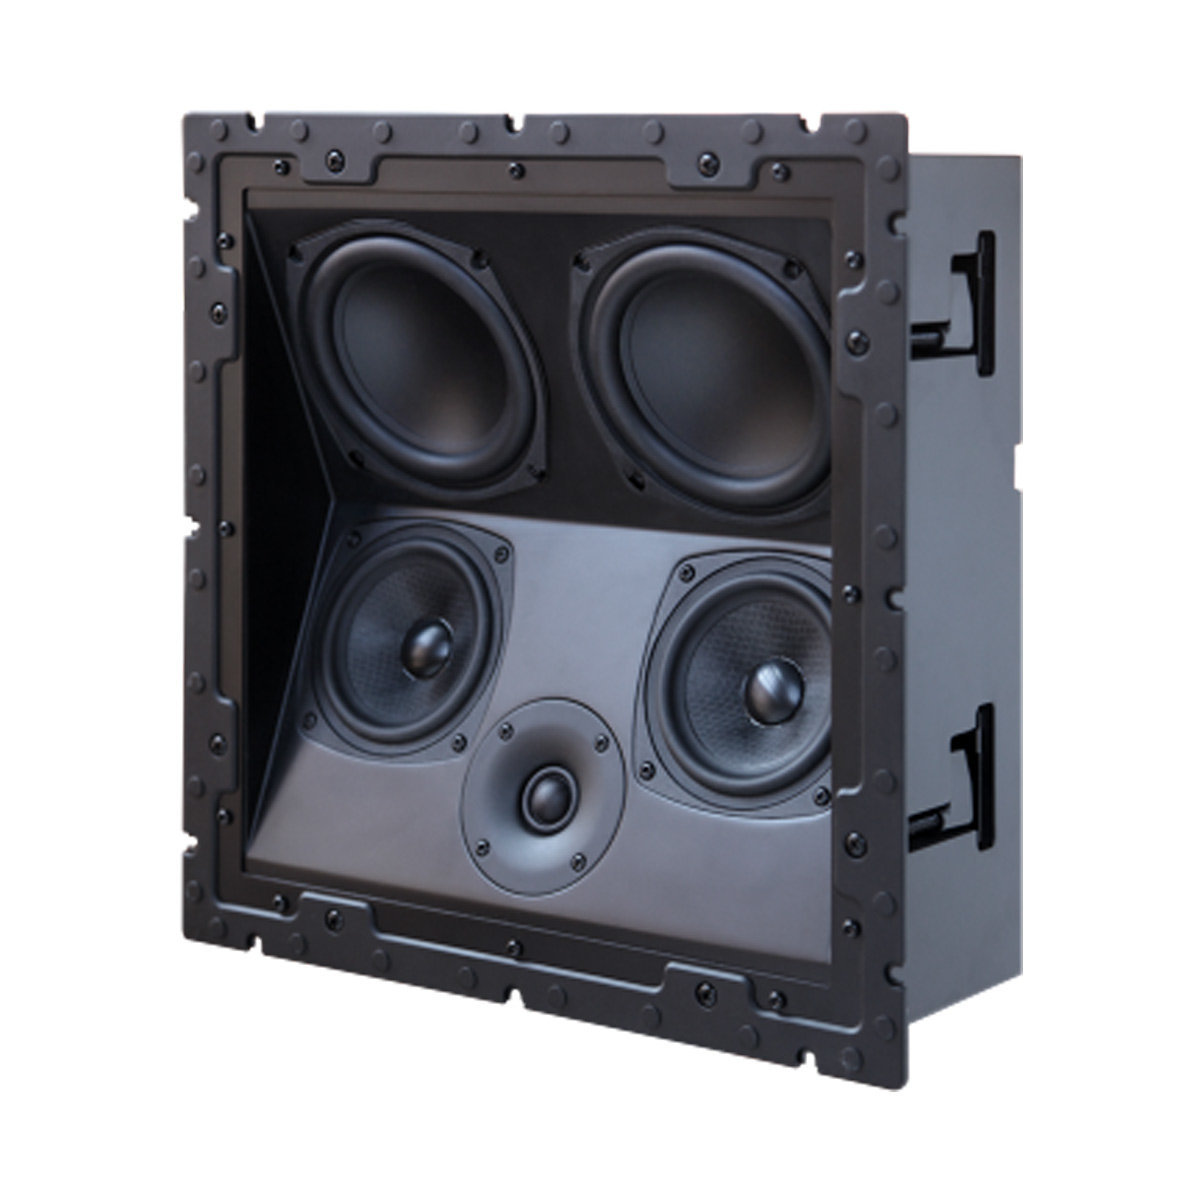 Can only use in-ceiling speakers in home theater install ...